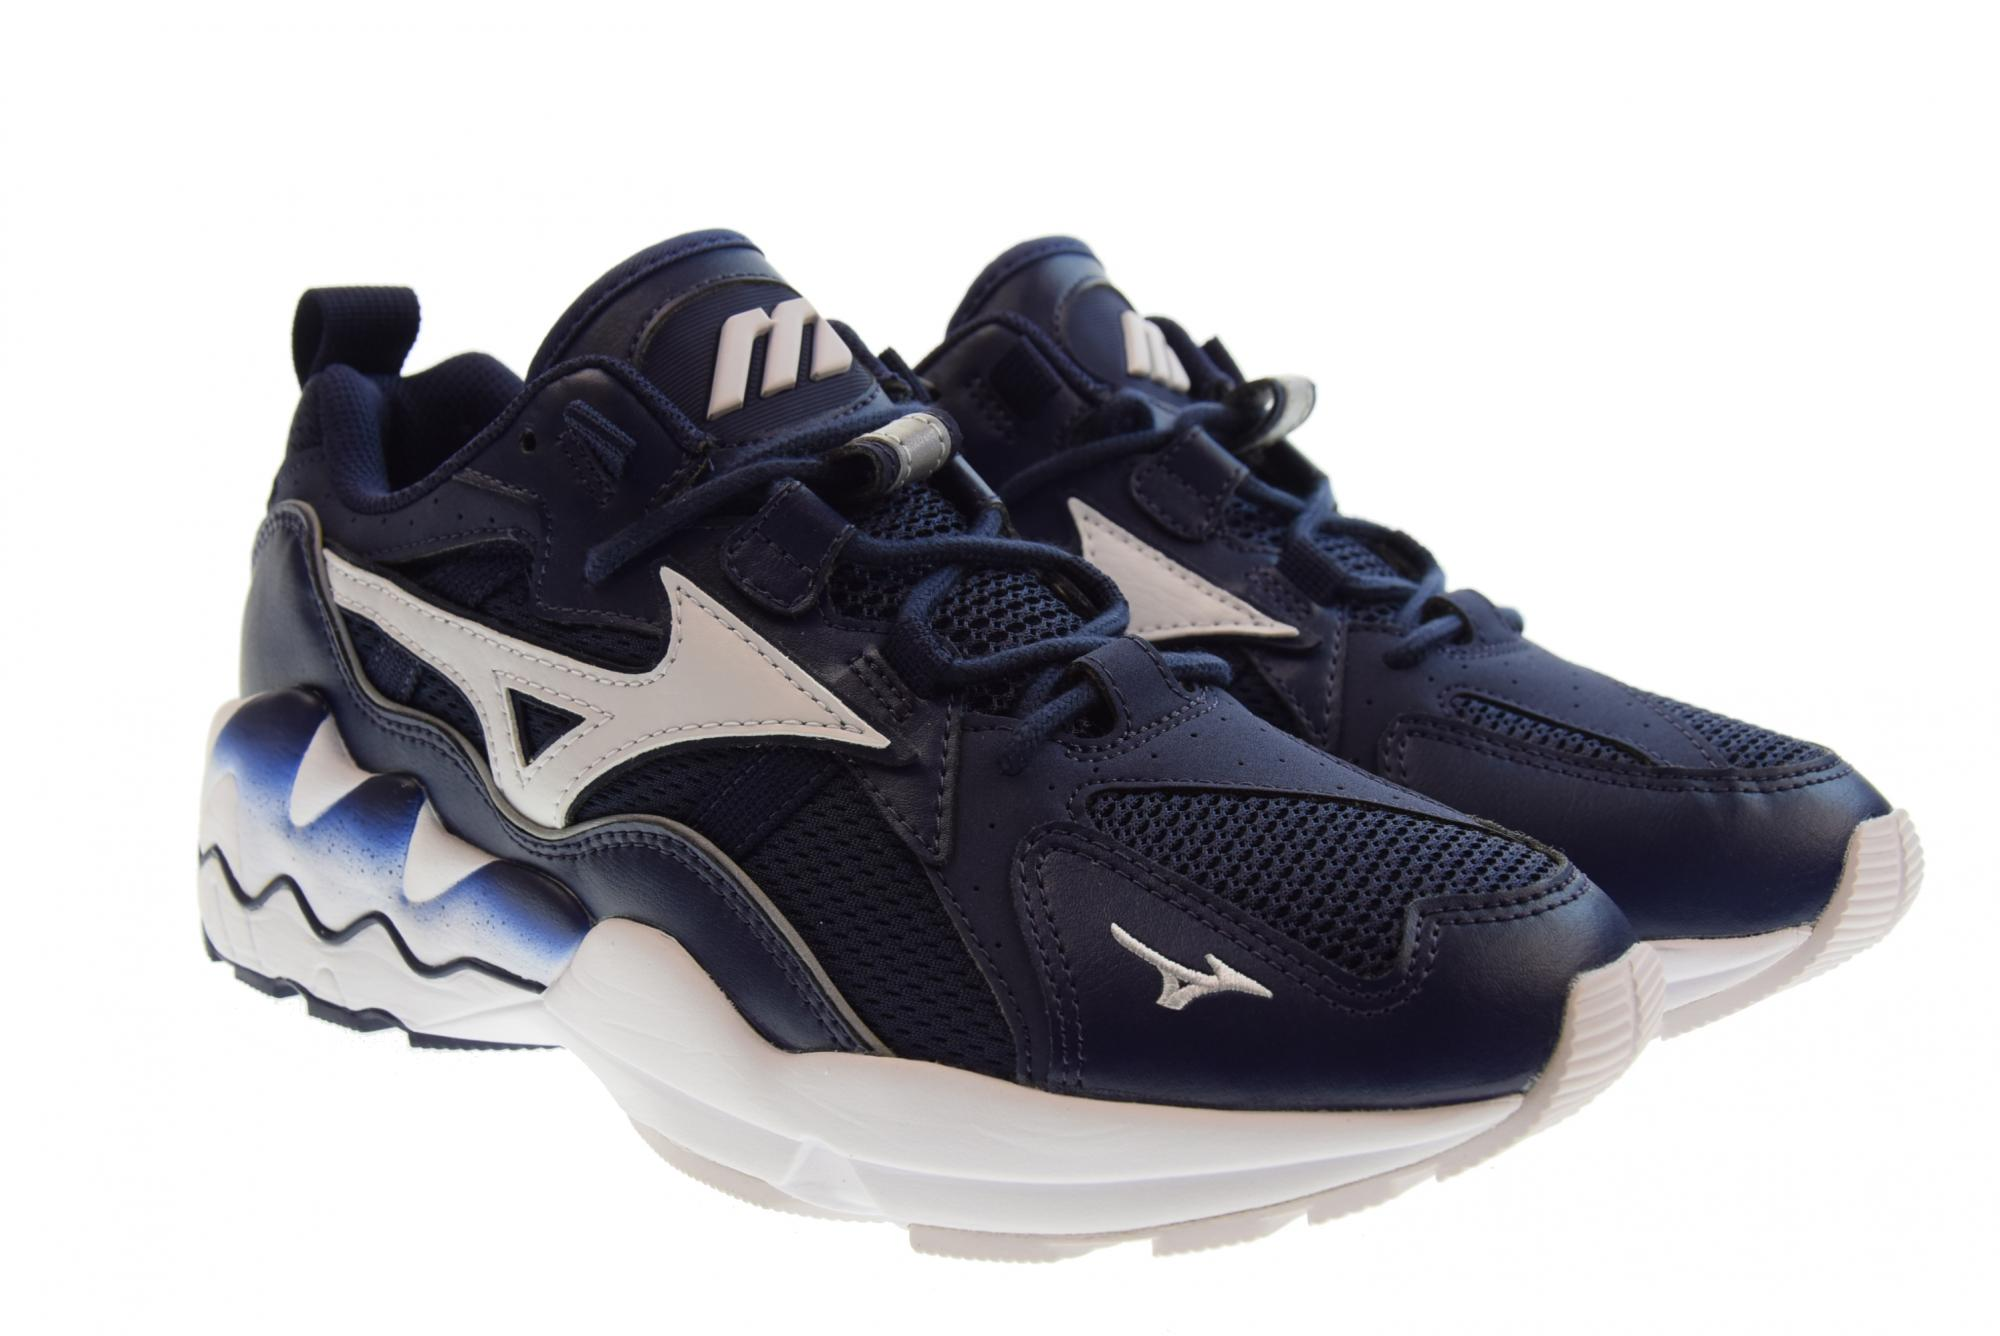 check out bb1ee fee92 Details about Mizuno 1906 P19u shoes men low sneakers D1GA192713 WAVE RIDER  1